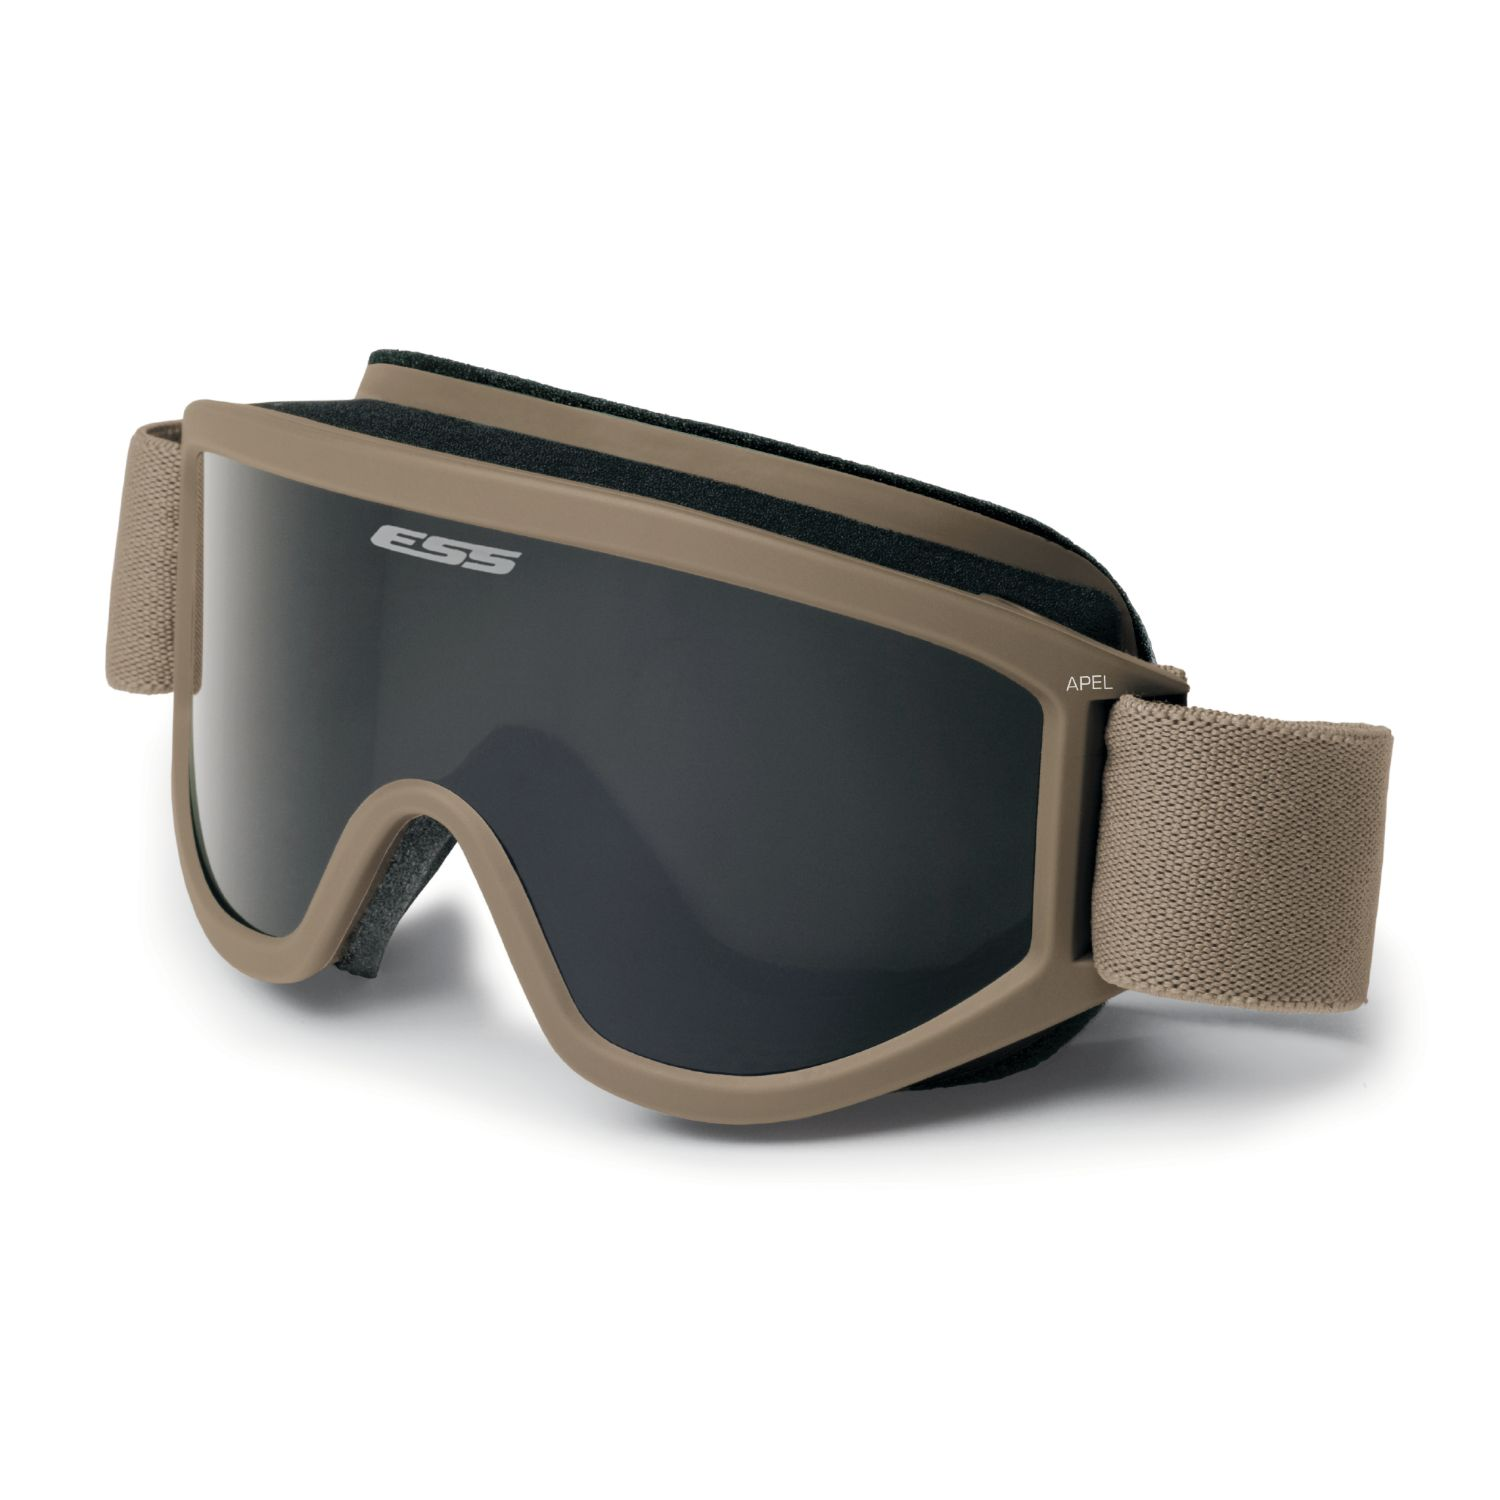 ESS Land Ops Tan 499 Retail APEL Goggle